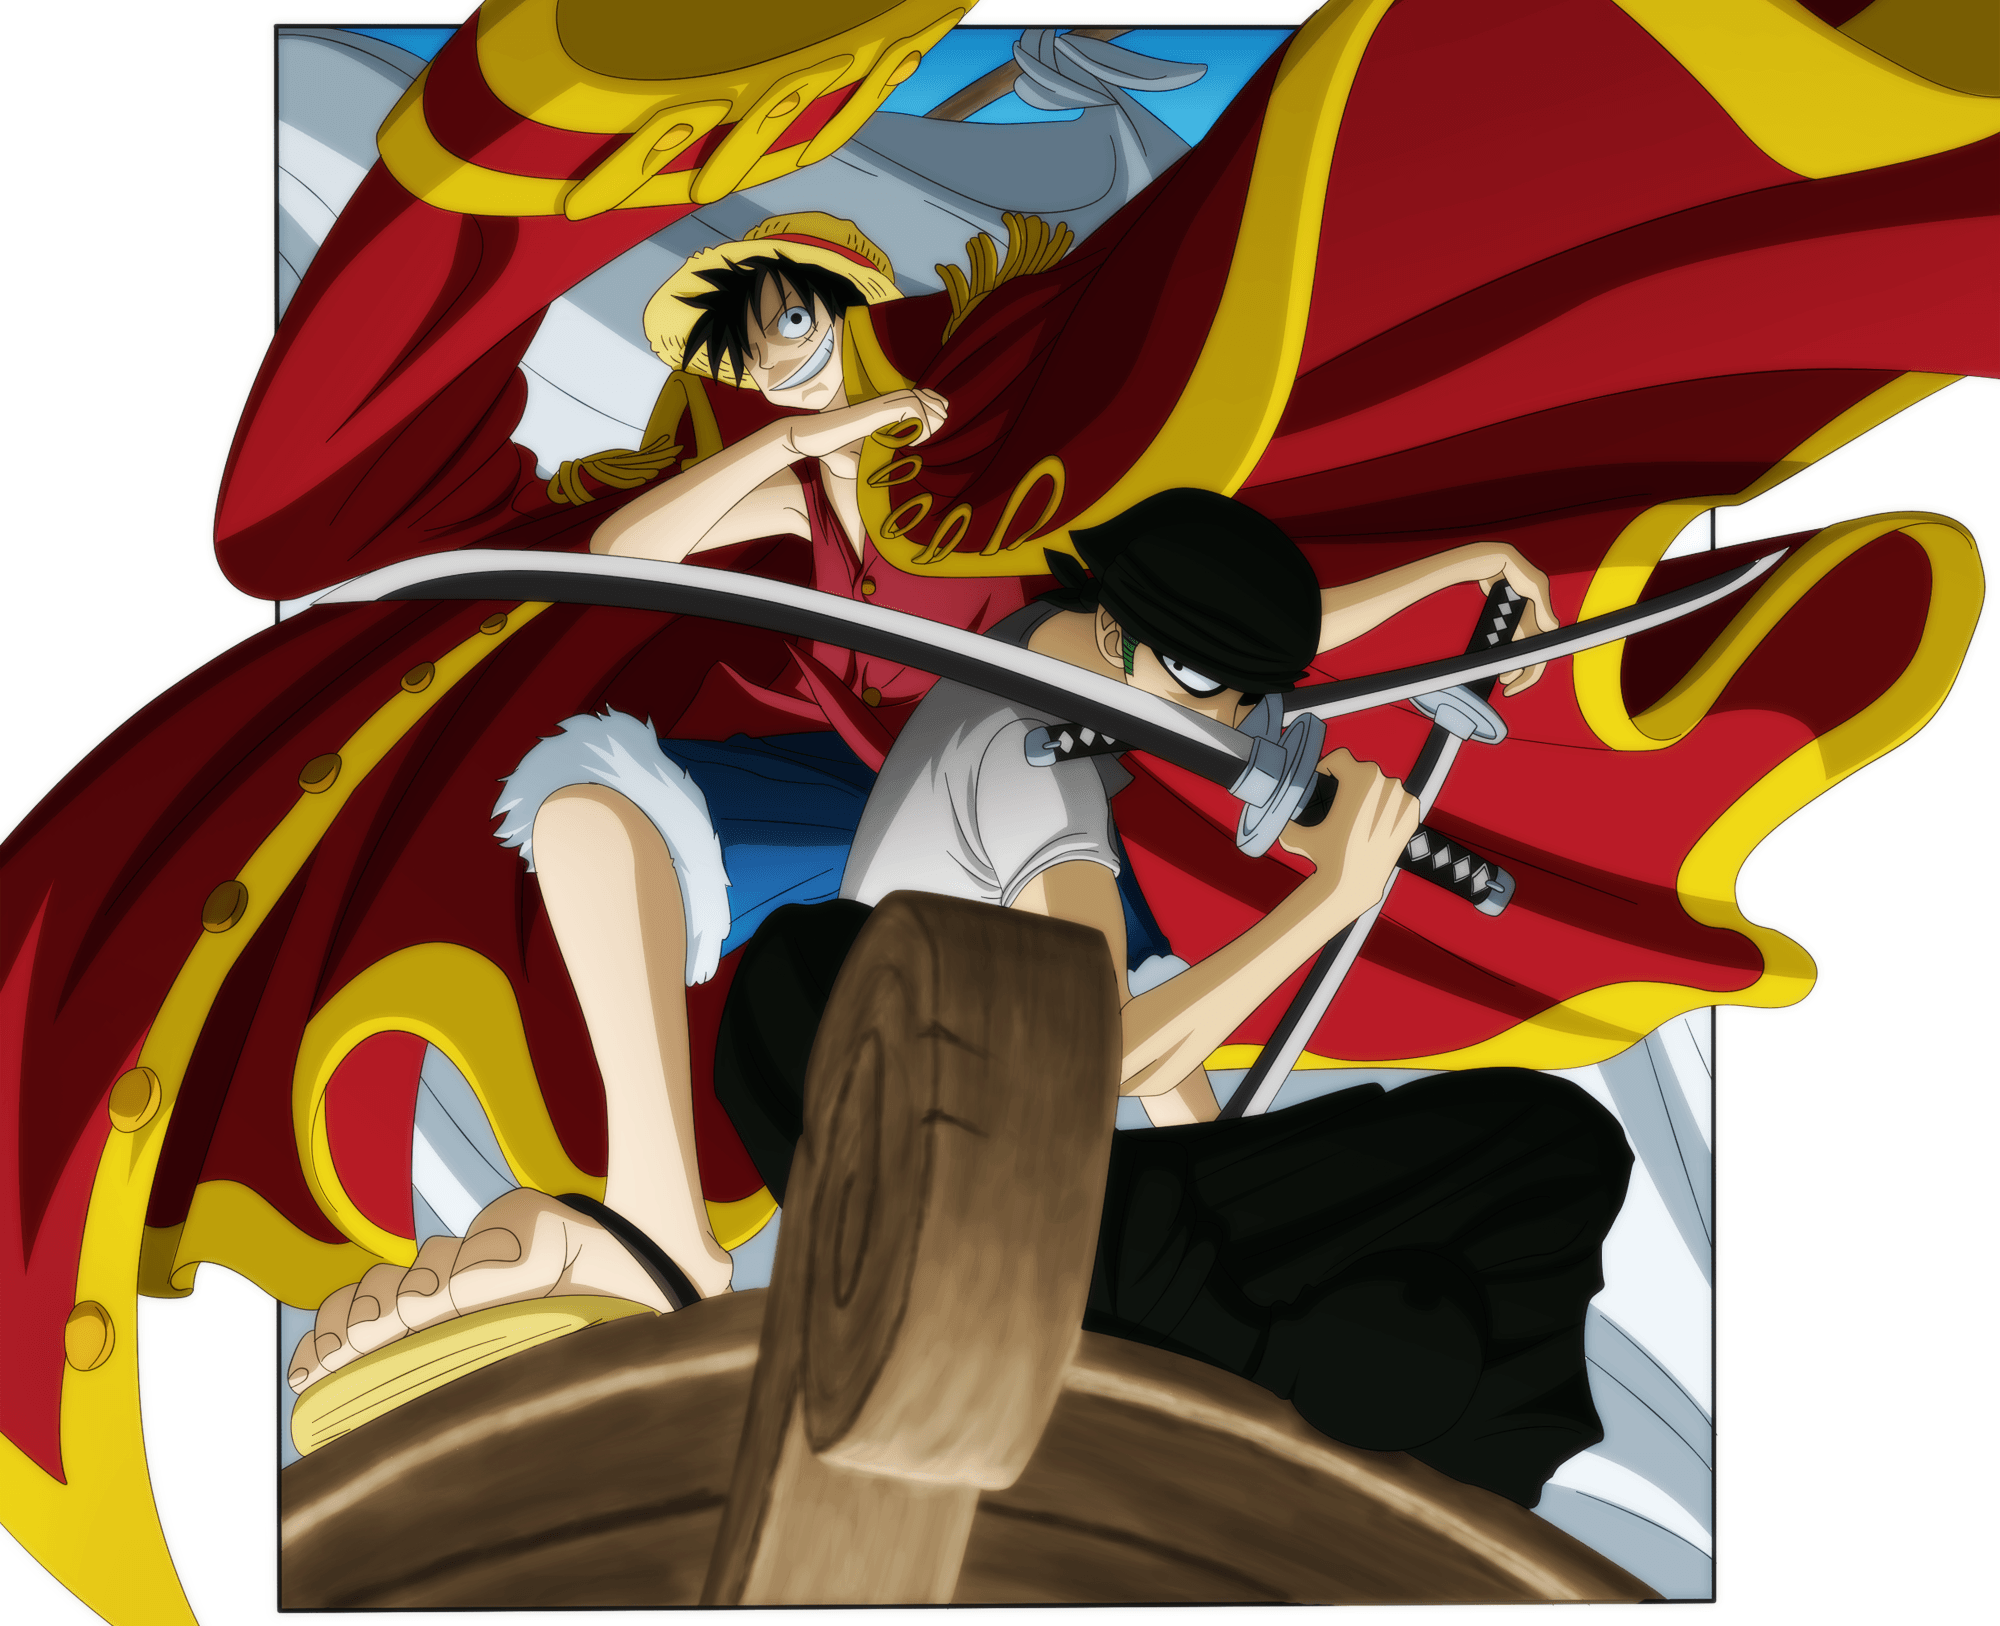 Anime, one piece, monkey d. Luffy X Zoro Wallpapers - Wallpaper Cave